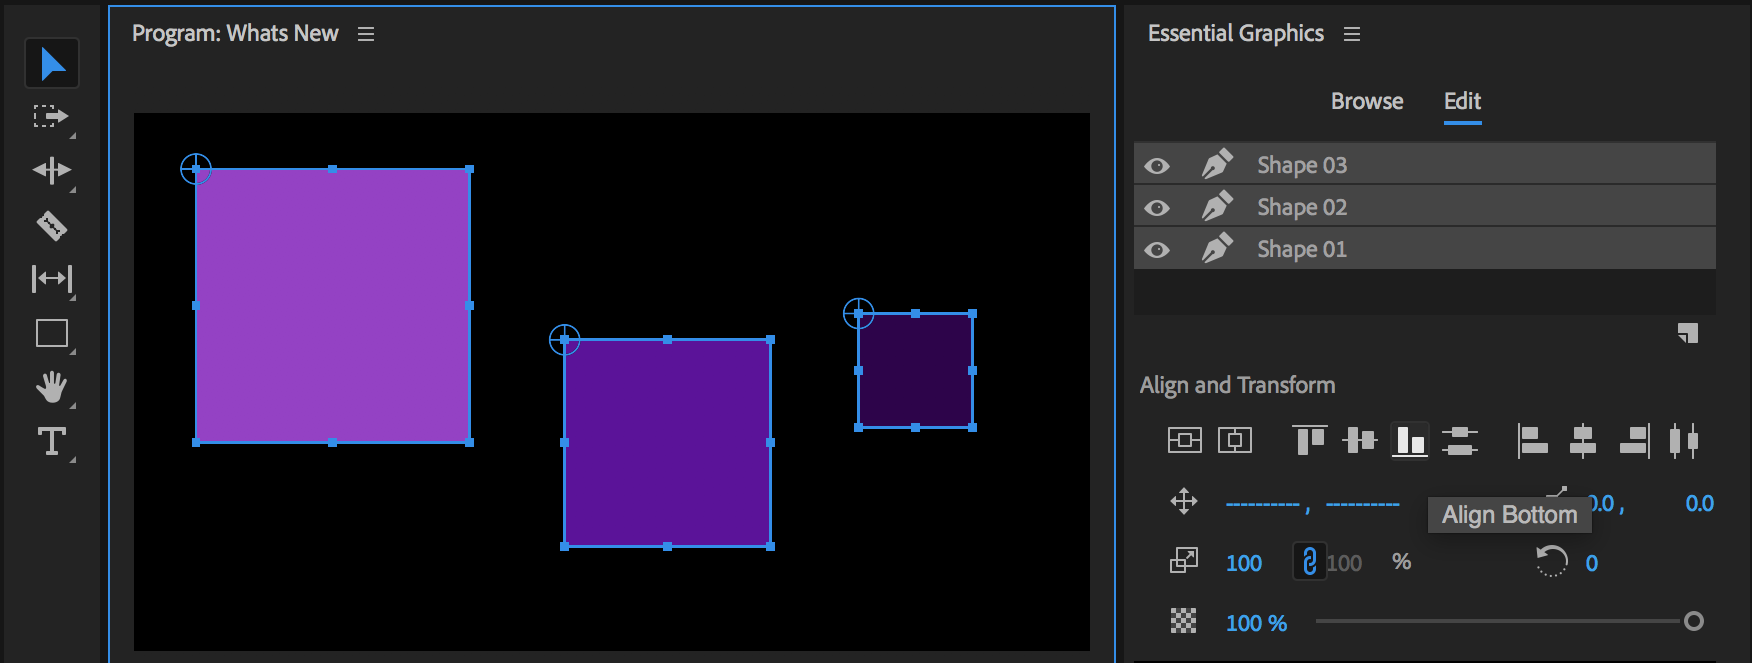 Options to align and distribute layers in the Essential Graphics panel